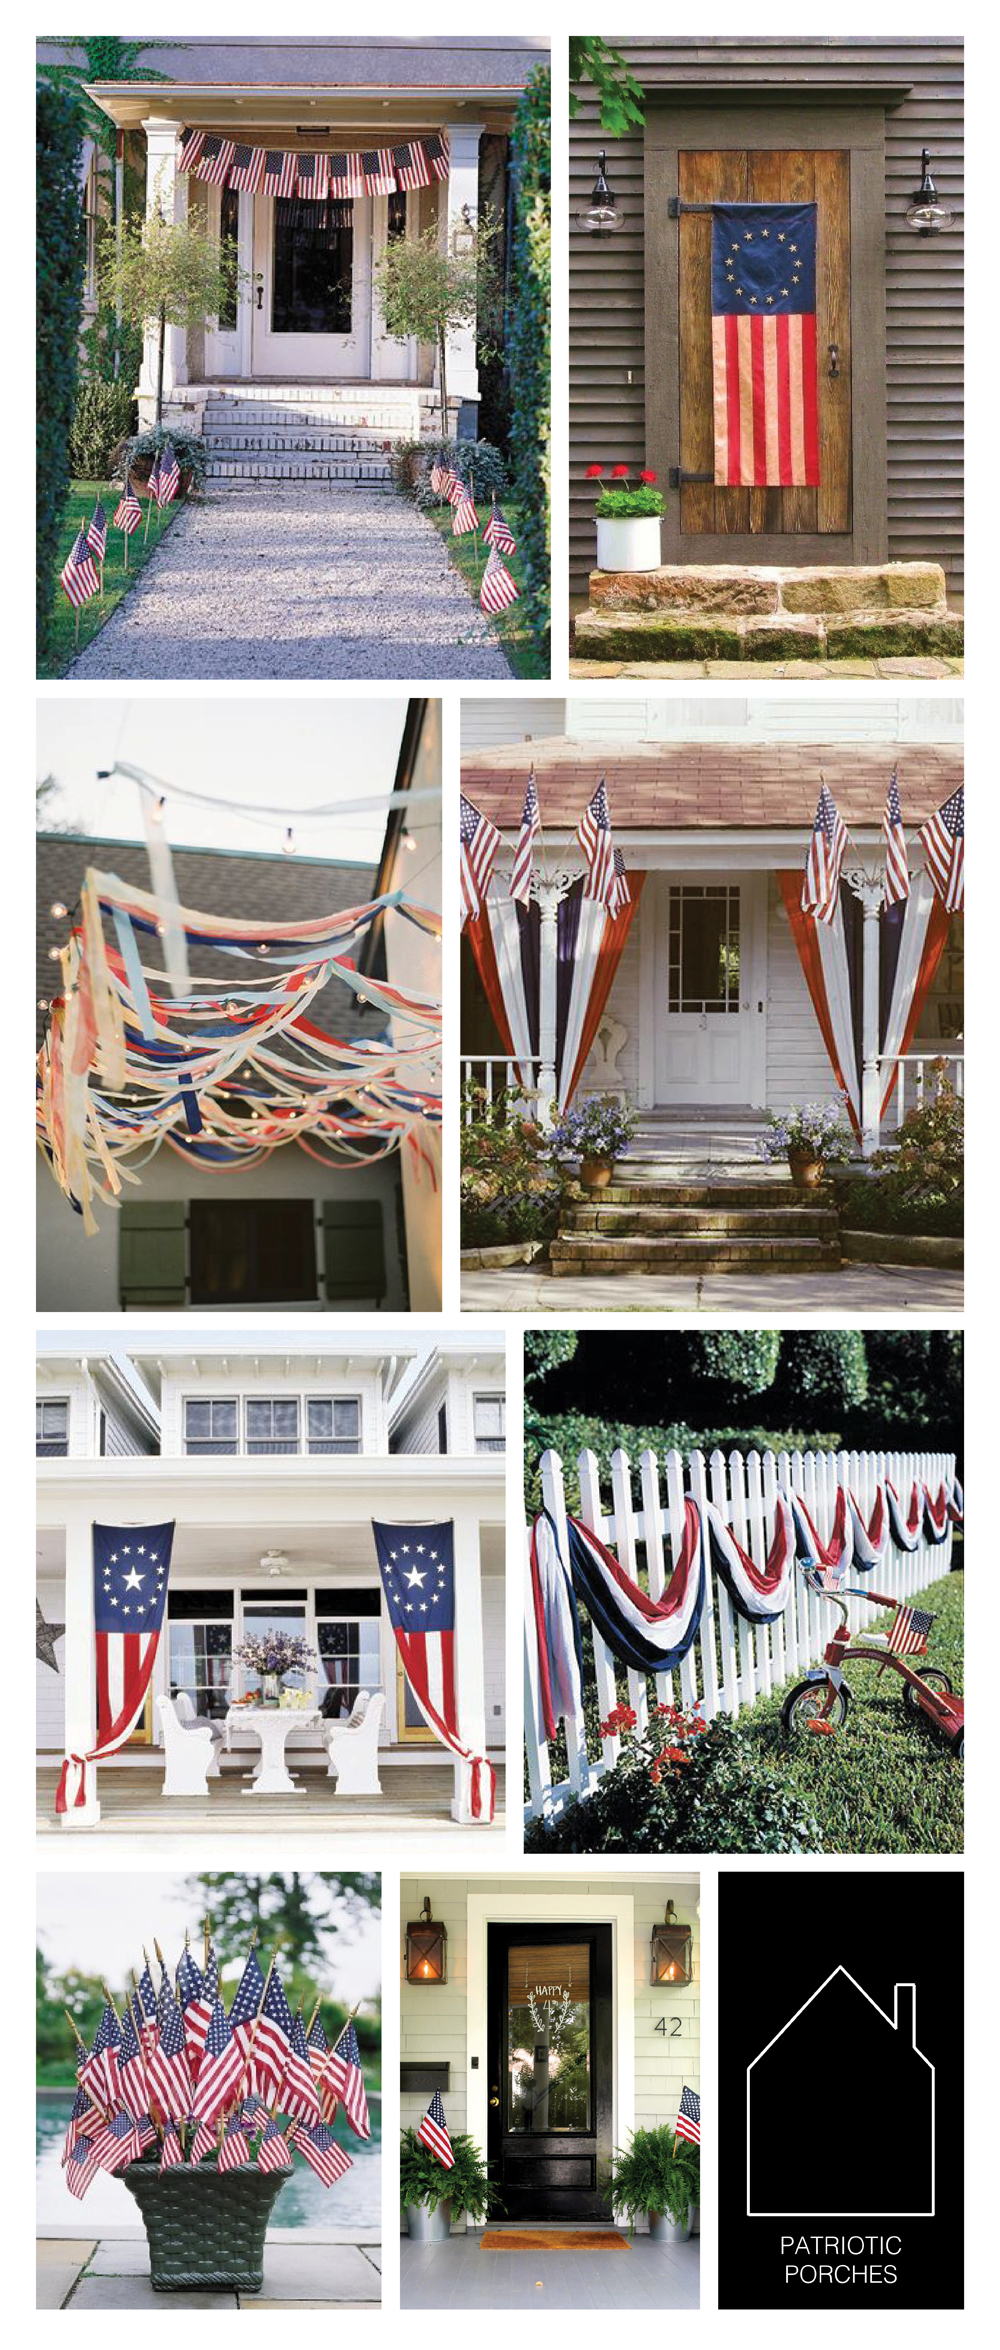 from top left - brick porch via  Martha Stewart  - colonial home via  Samplers and Santas  - streamers via source unknown - front porch via  Martha Stewart  - colonial flag via source unknown - fence banner source unknown - flag display via  Martha Stewart  - front door via  most lovely things